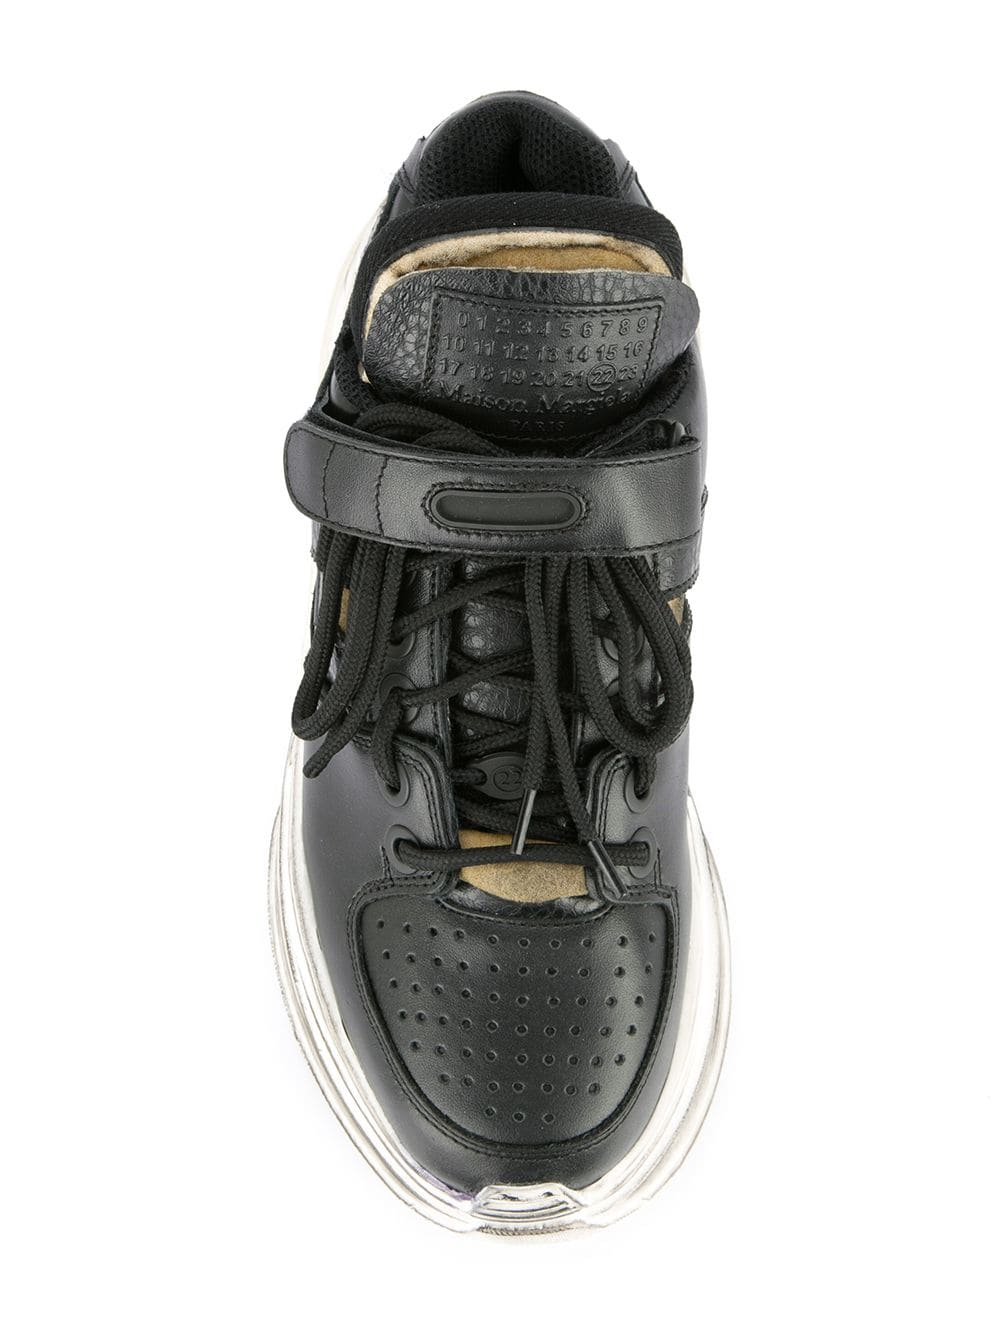 MAISON MARGIELA WOMEN RETRO FIT LOW TOP SNEAKERS